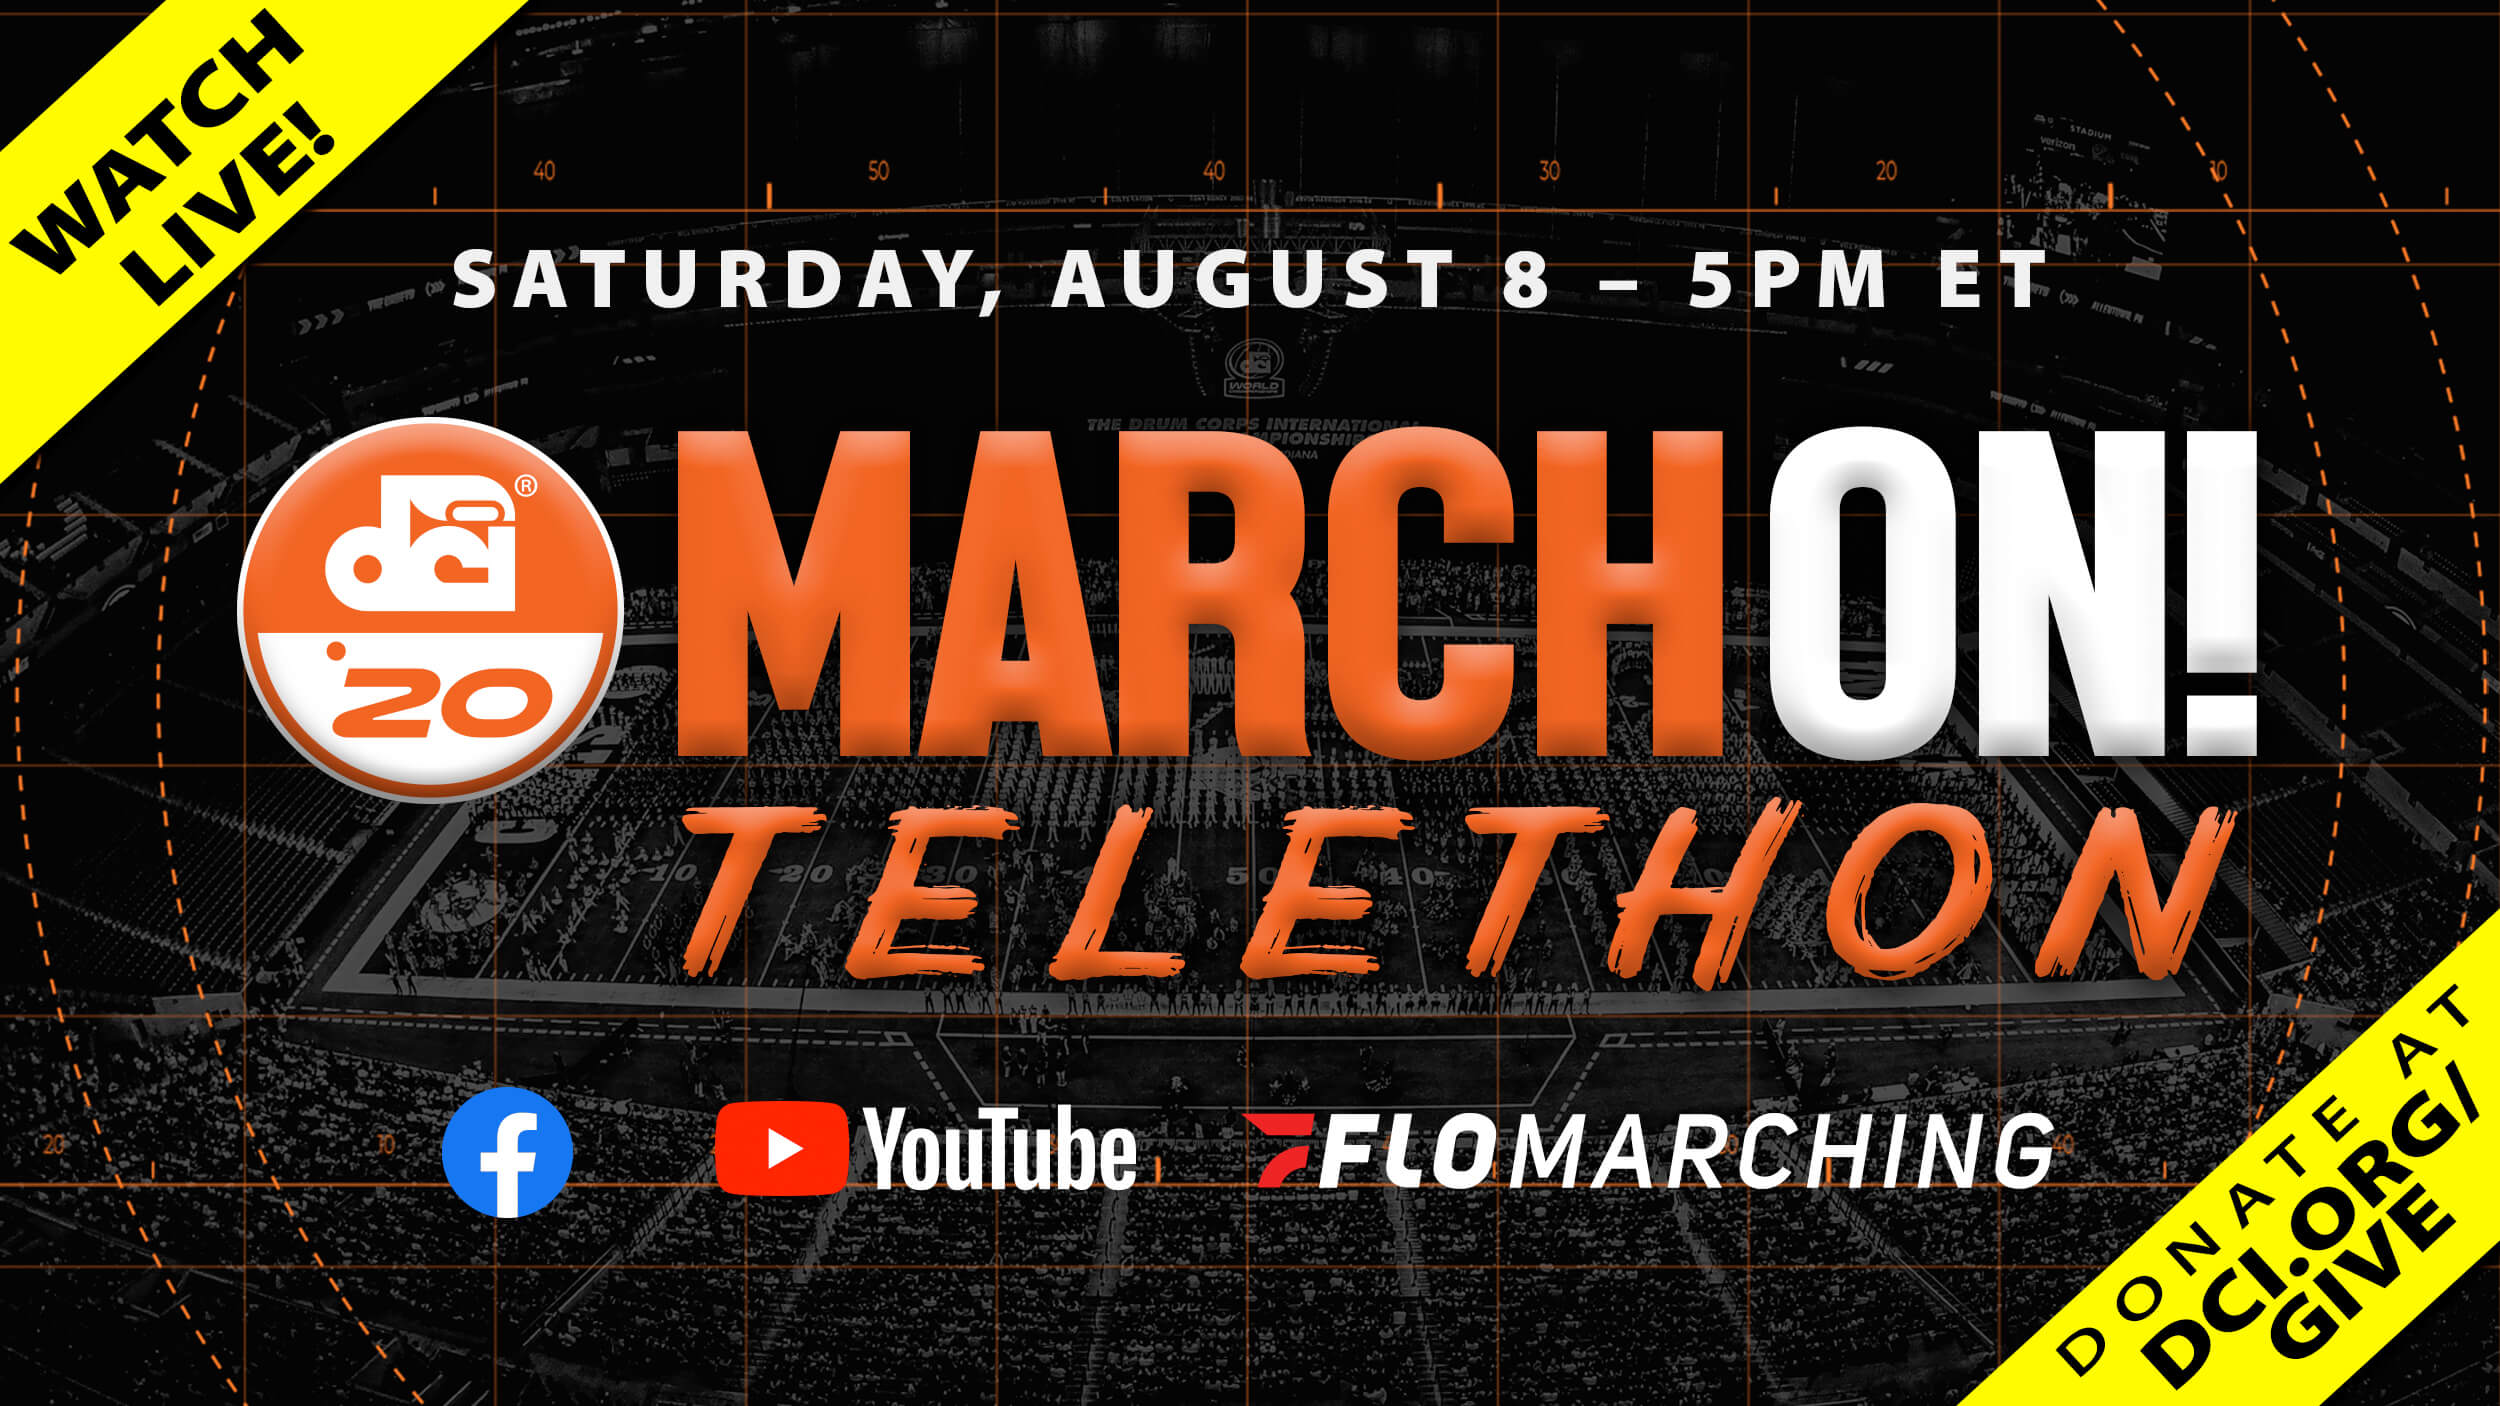 WATCH NOW: DCI MarchOn! Telethon